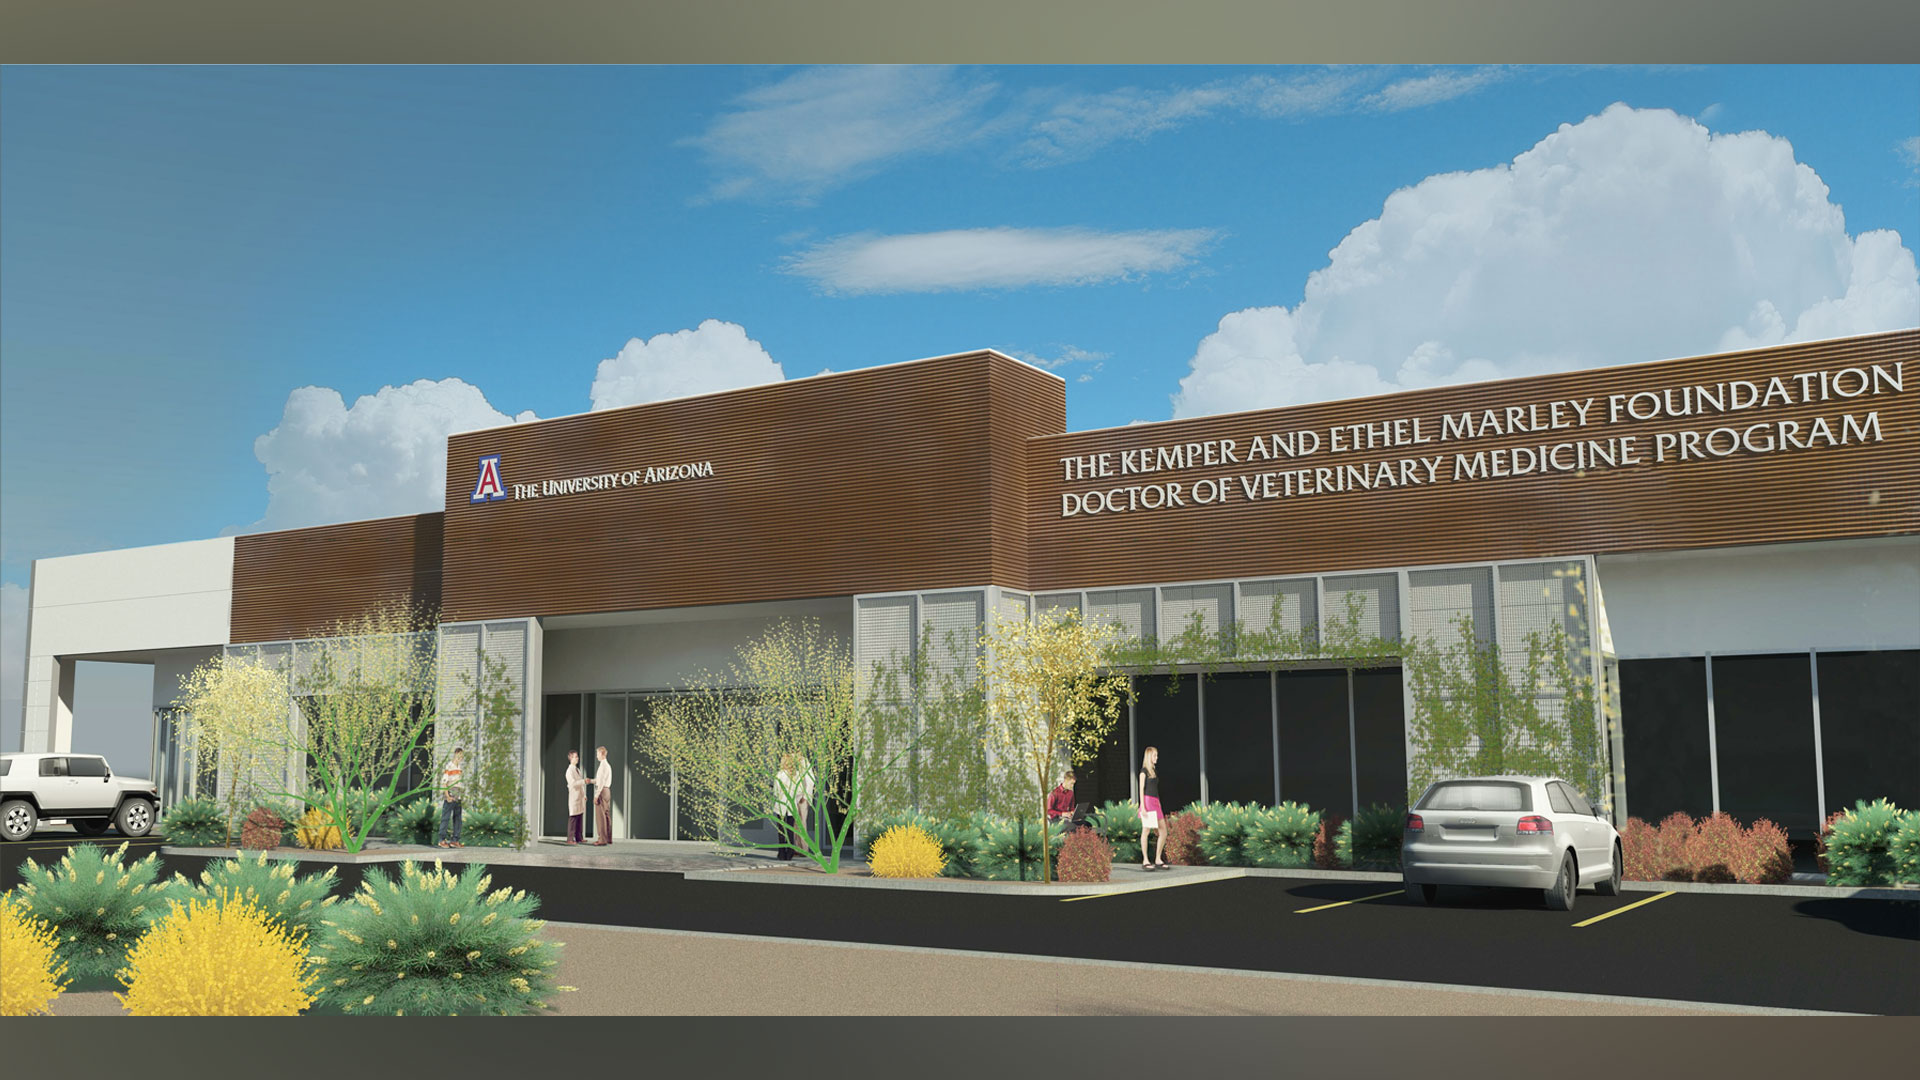 A rendering of the building for UA's recently approved veterinary medicine program.